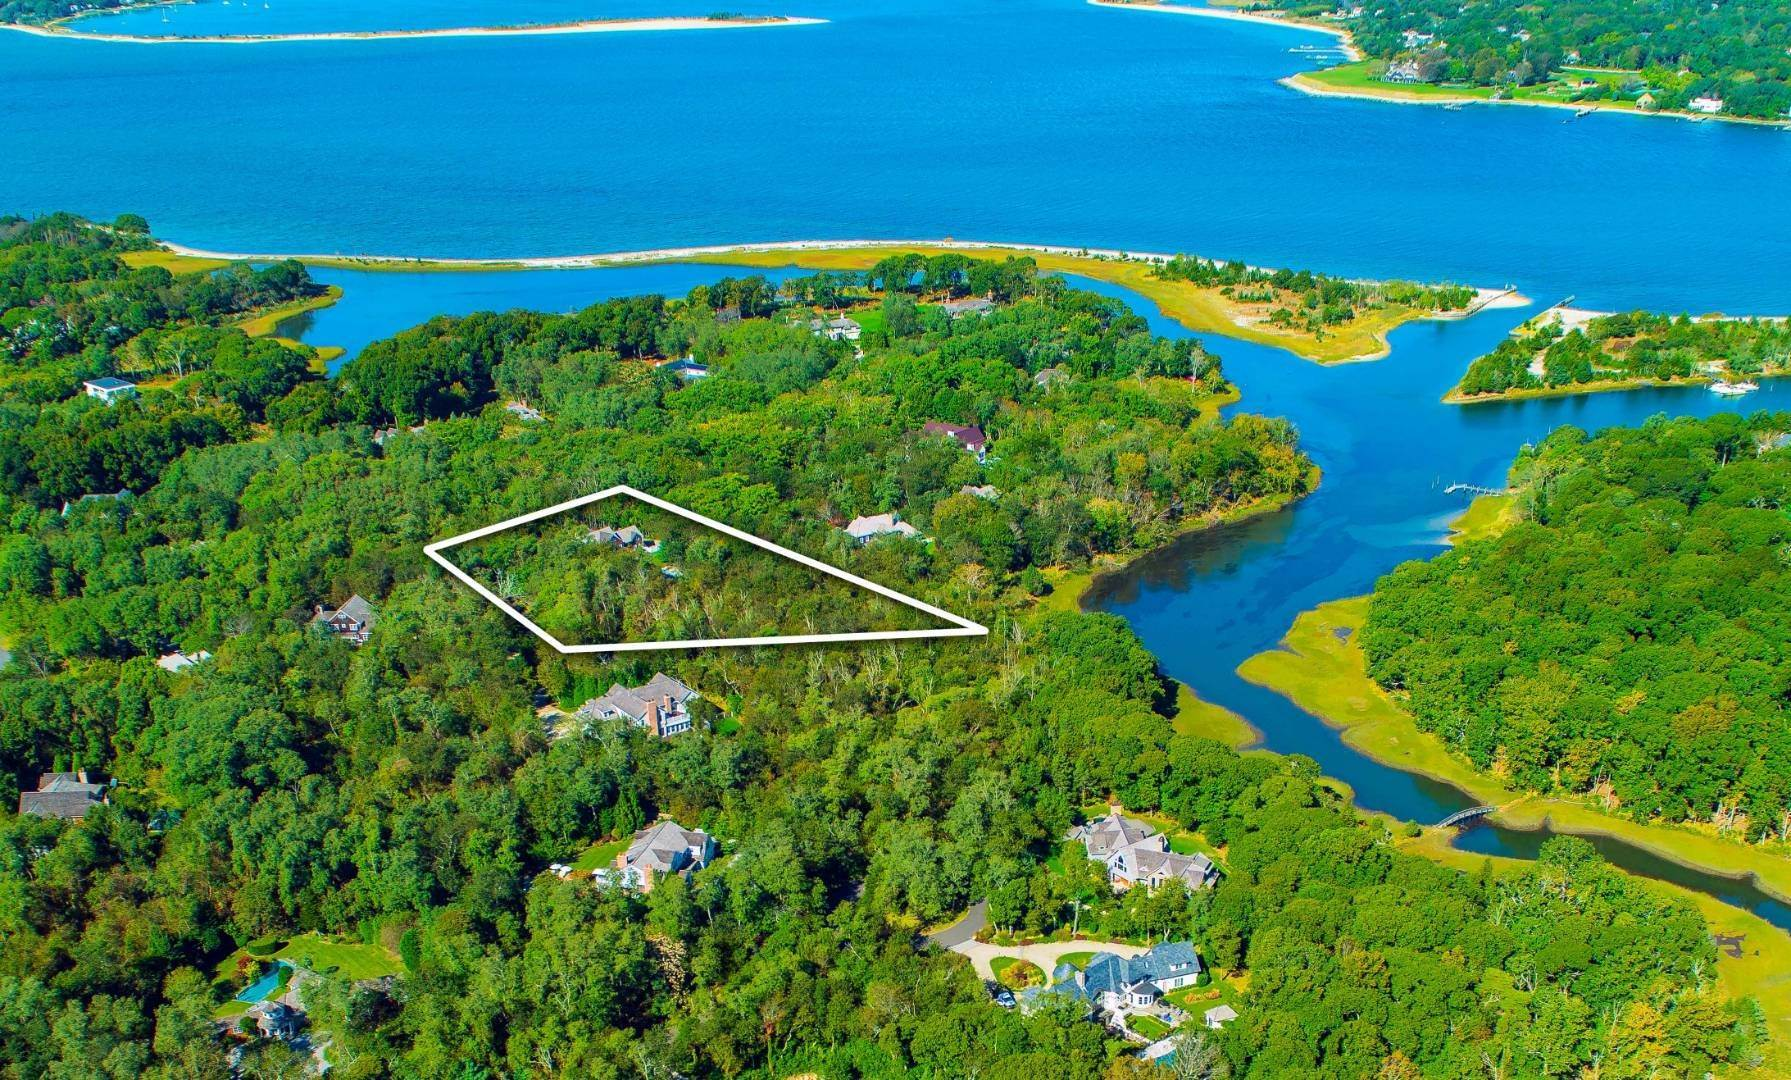 Single Family Home for Sale at Classic Sag Harbor Country Home 12 Ezekills Hollow, Sag Harbor, NY 11963